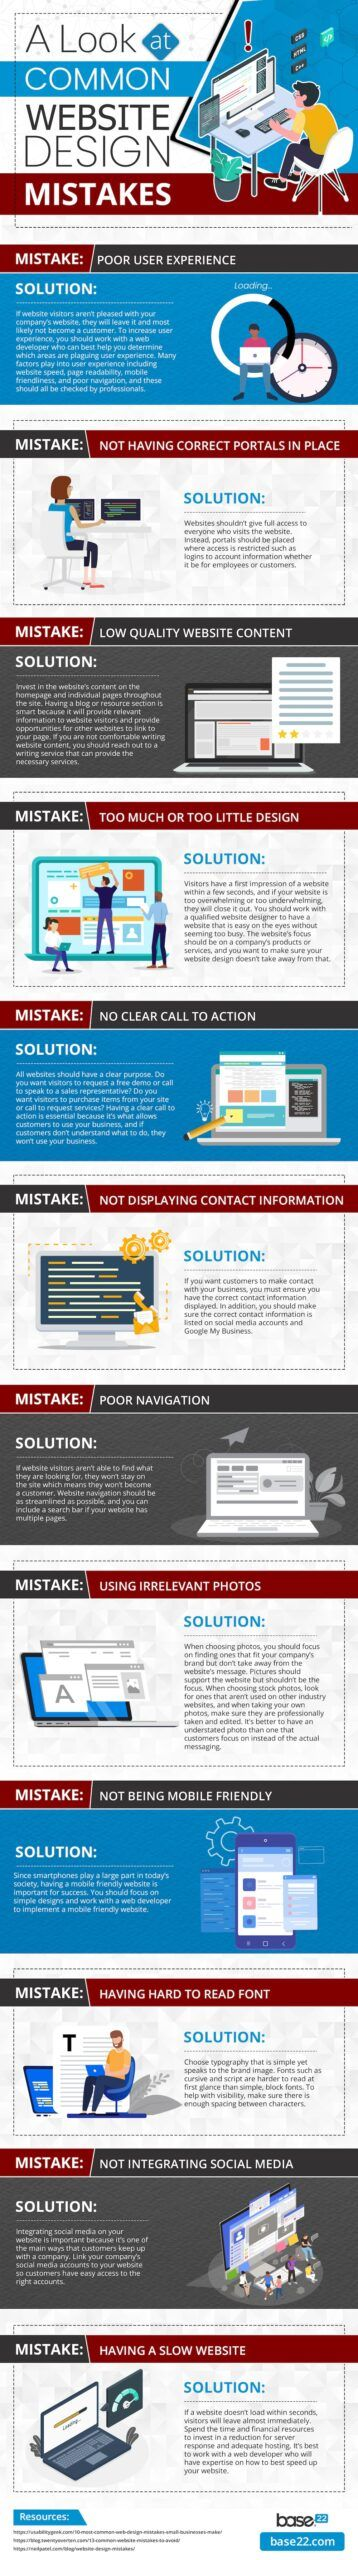 10 Common Website Design Mistakes